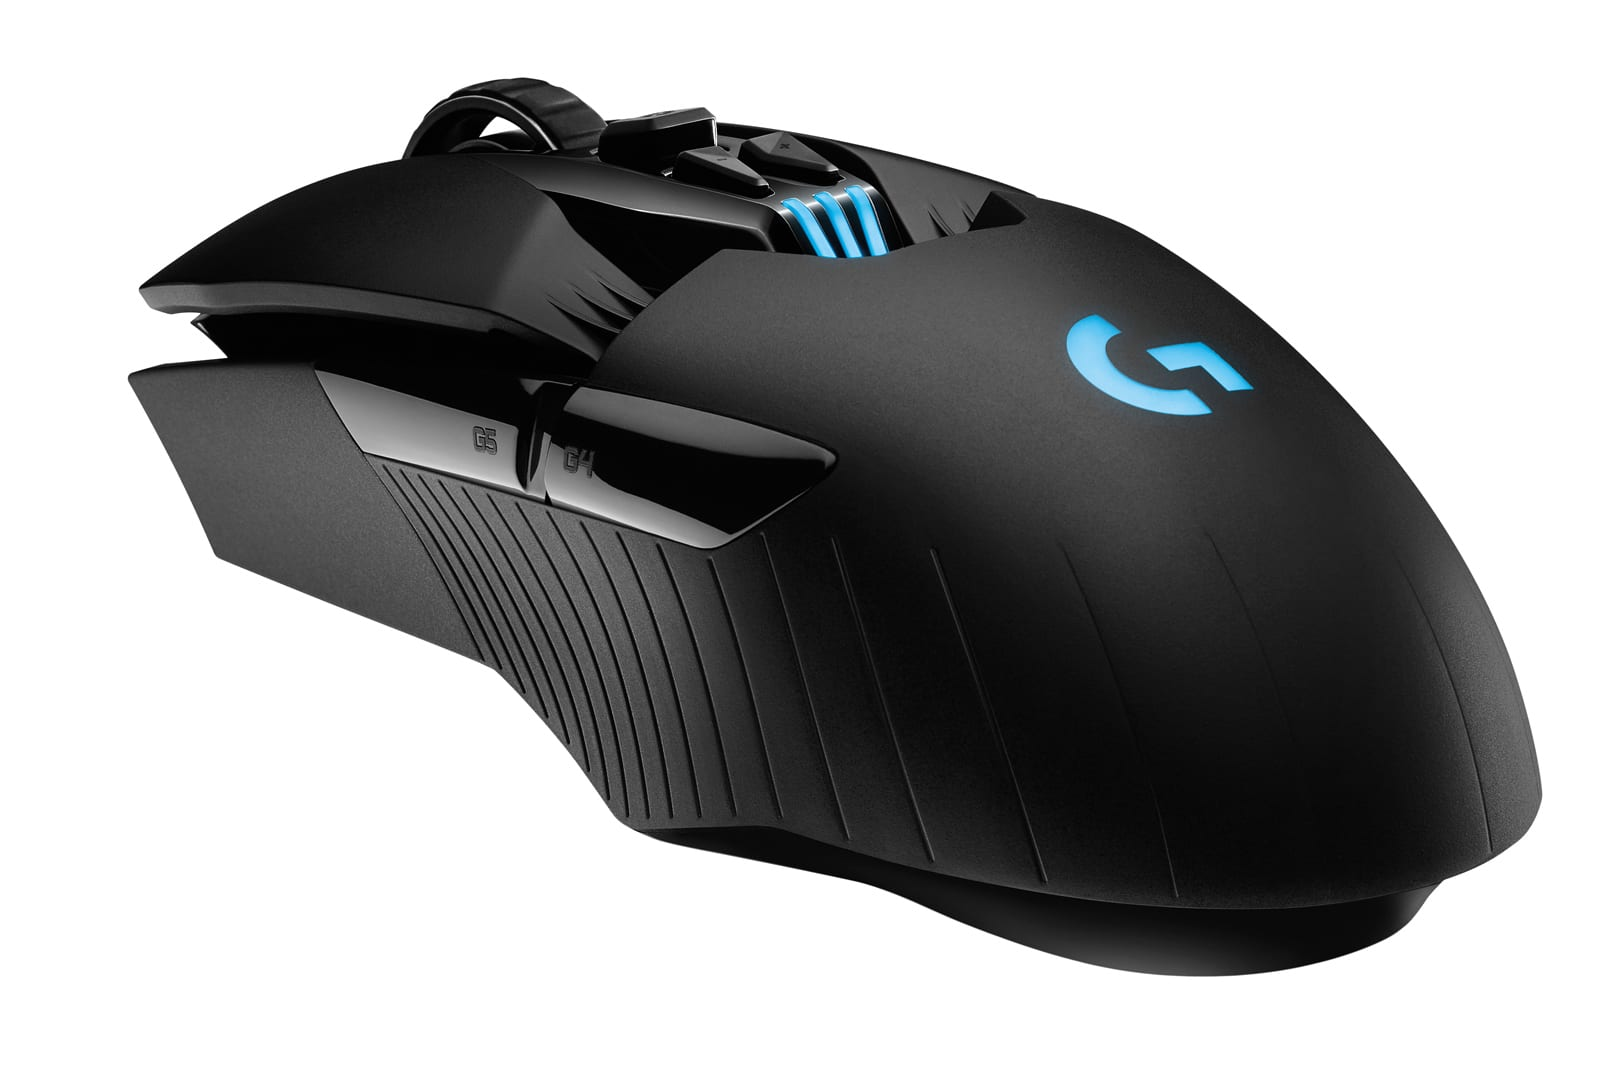 Logitech updates a trio of gaming mice with high-precision sensors